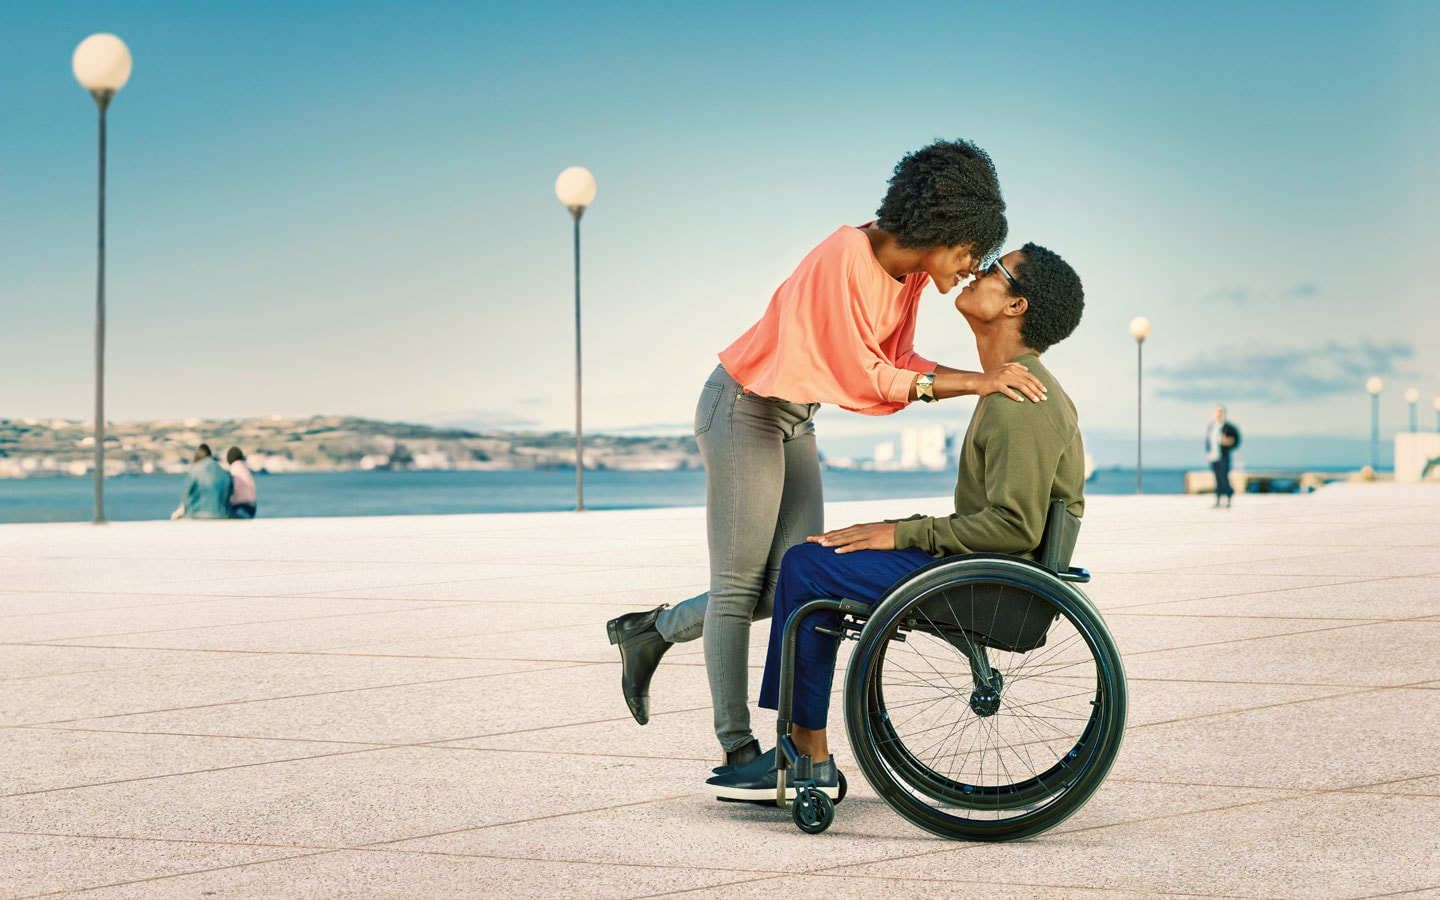 Couple sharing a moment with man in wheelchair